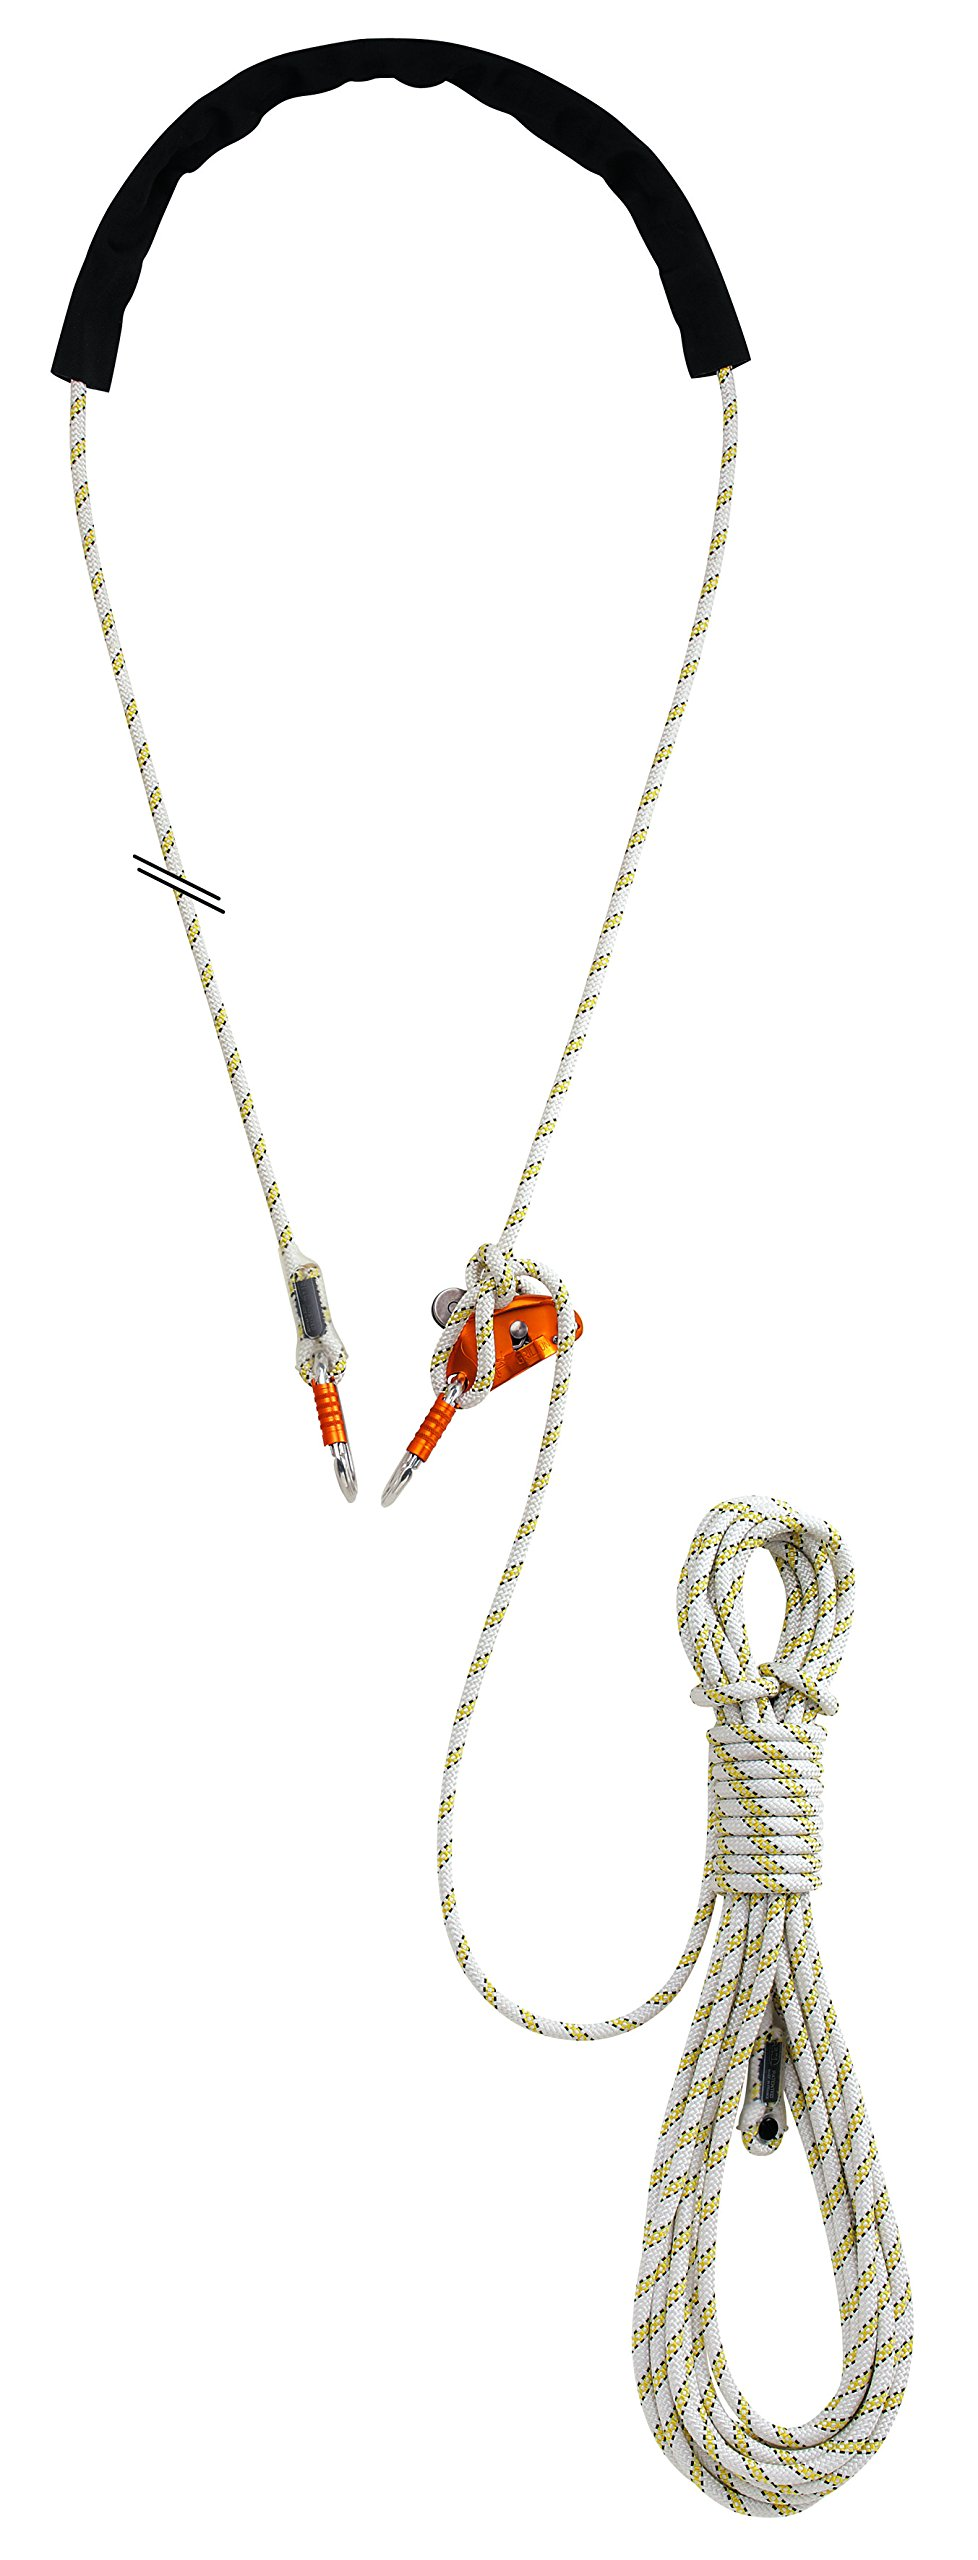 PETZL - GRILLON, Adjustable Lanyard for Work Positioning, 5 m by PETZL (Image #1)